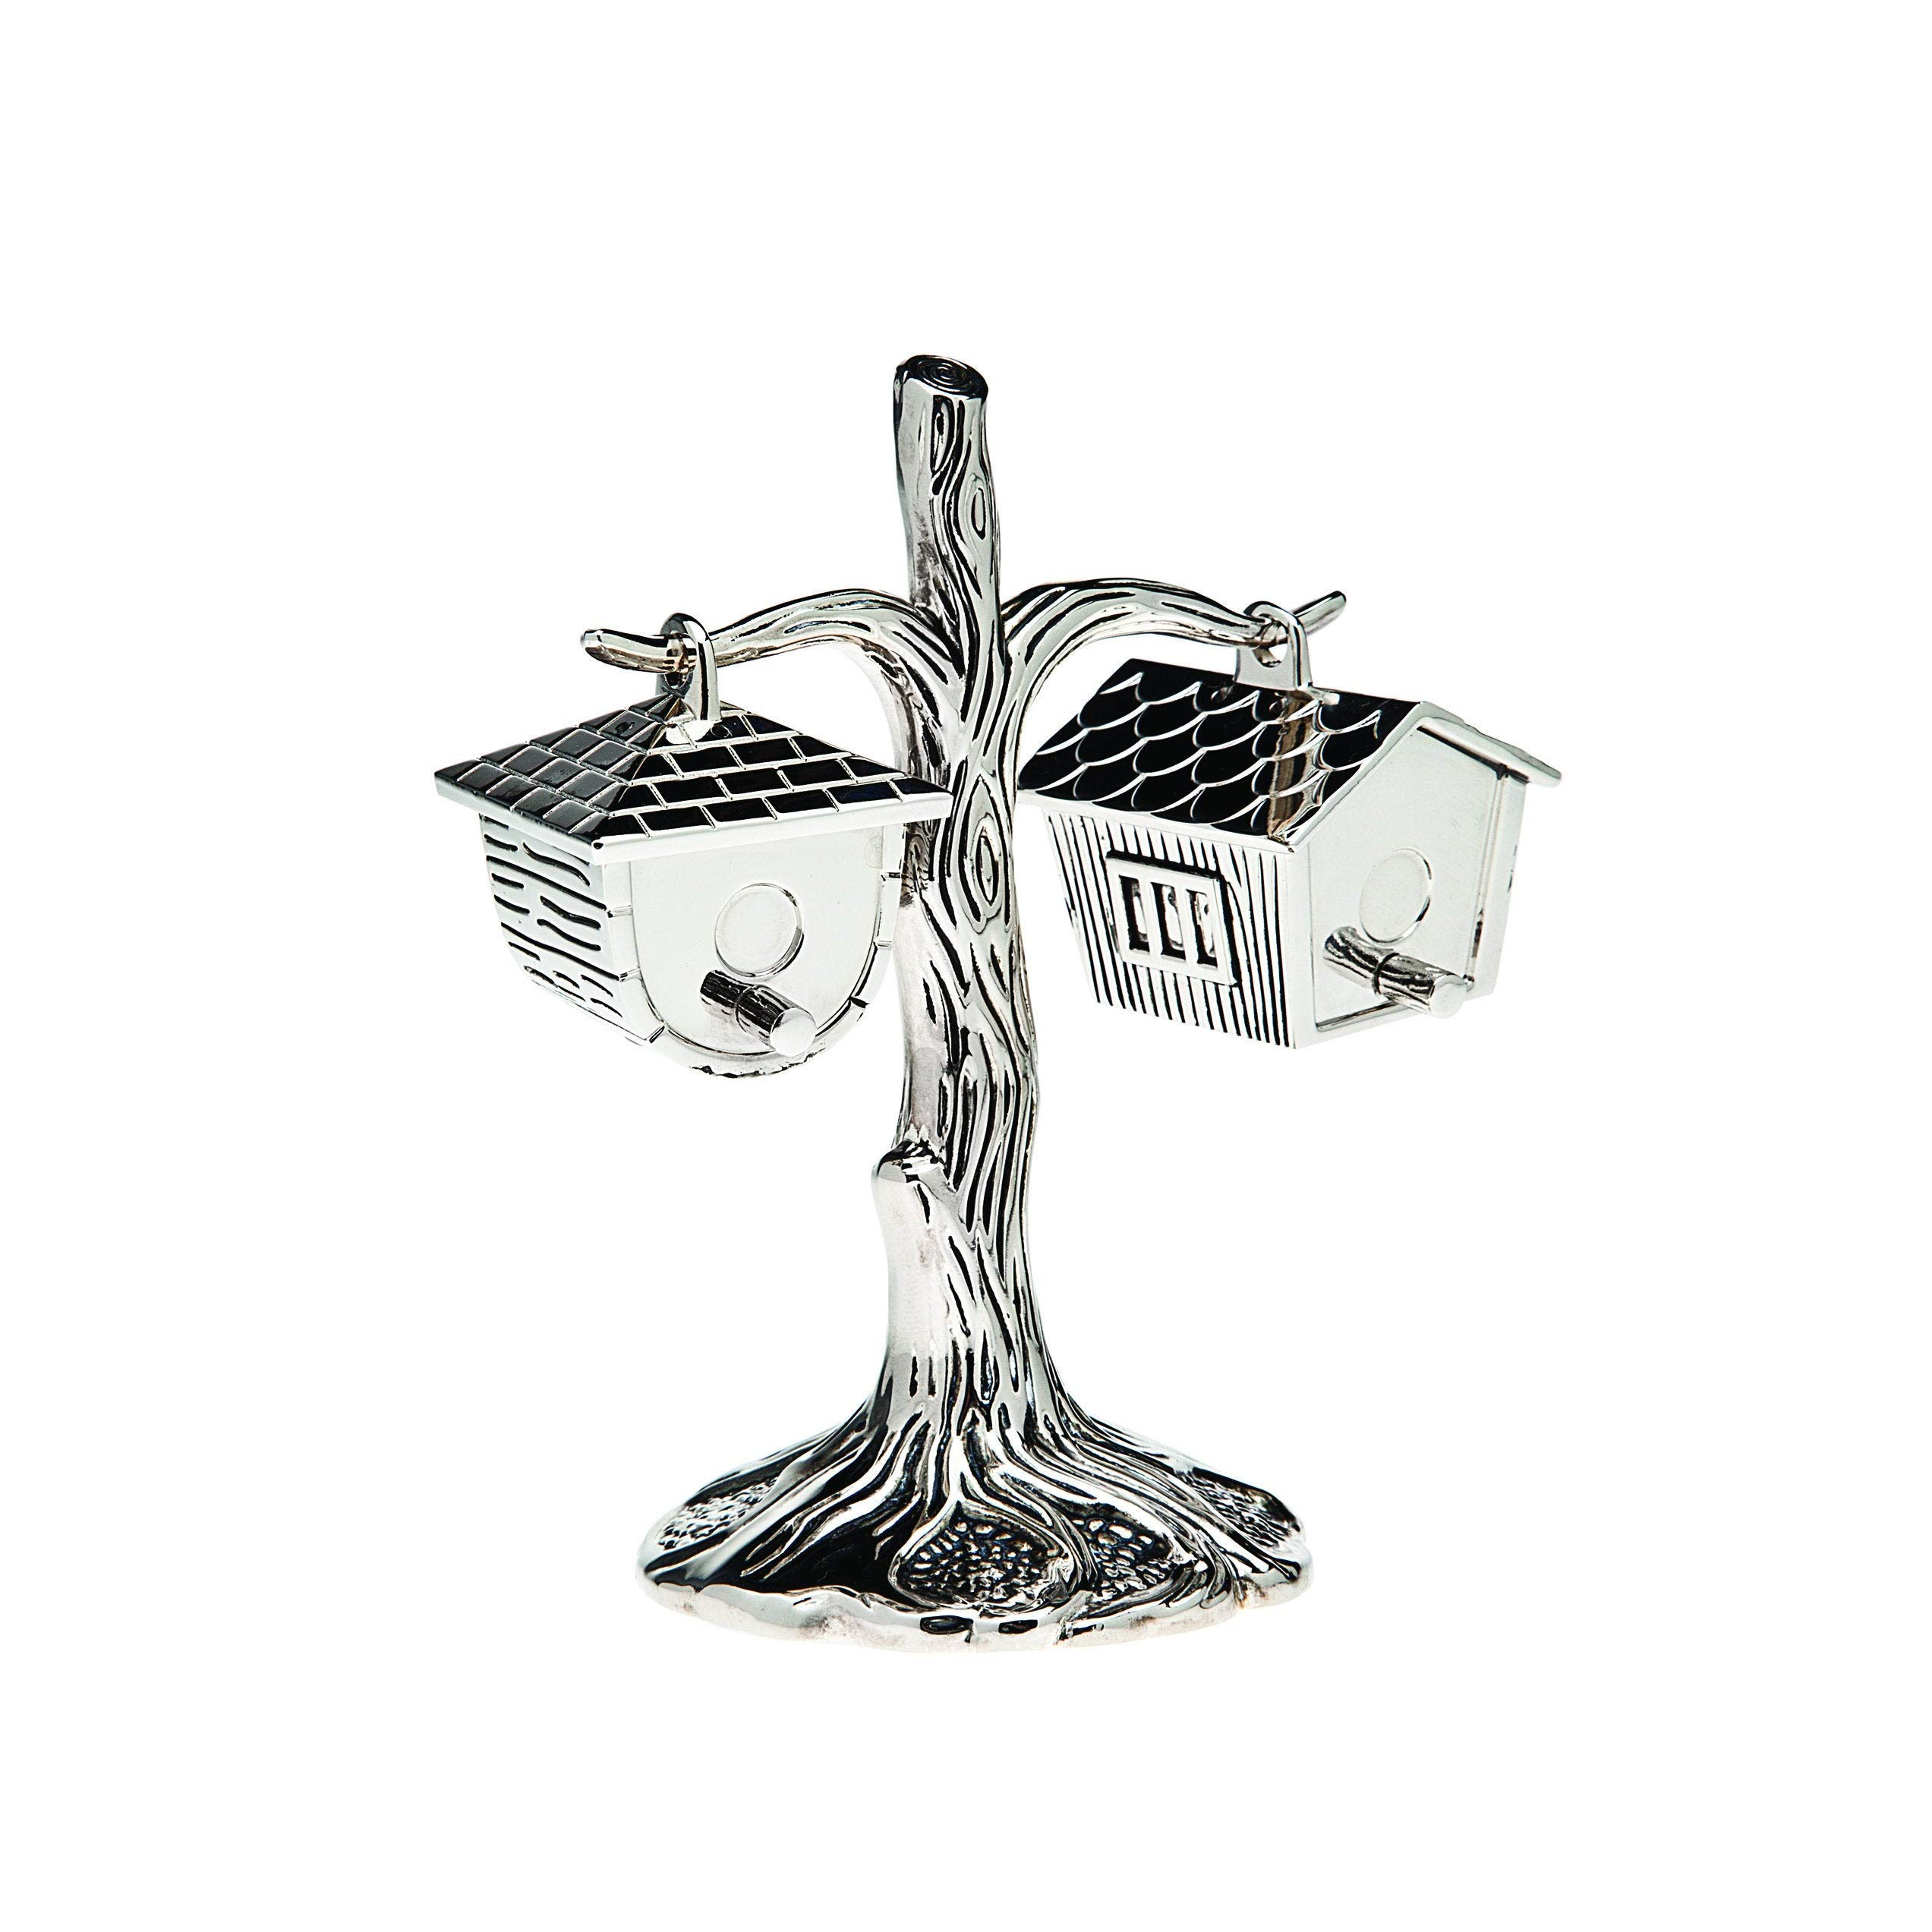 Nickelplated Tree Trunk Birdhouse 2-Ounce Salt and Pepper Shakers Silver Metal 2 Piece by Unknown